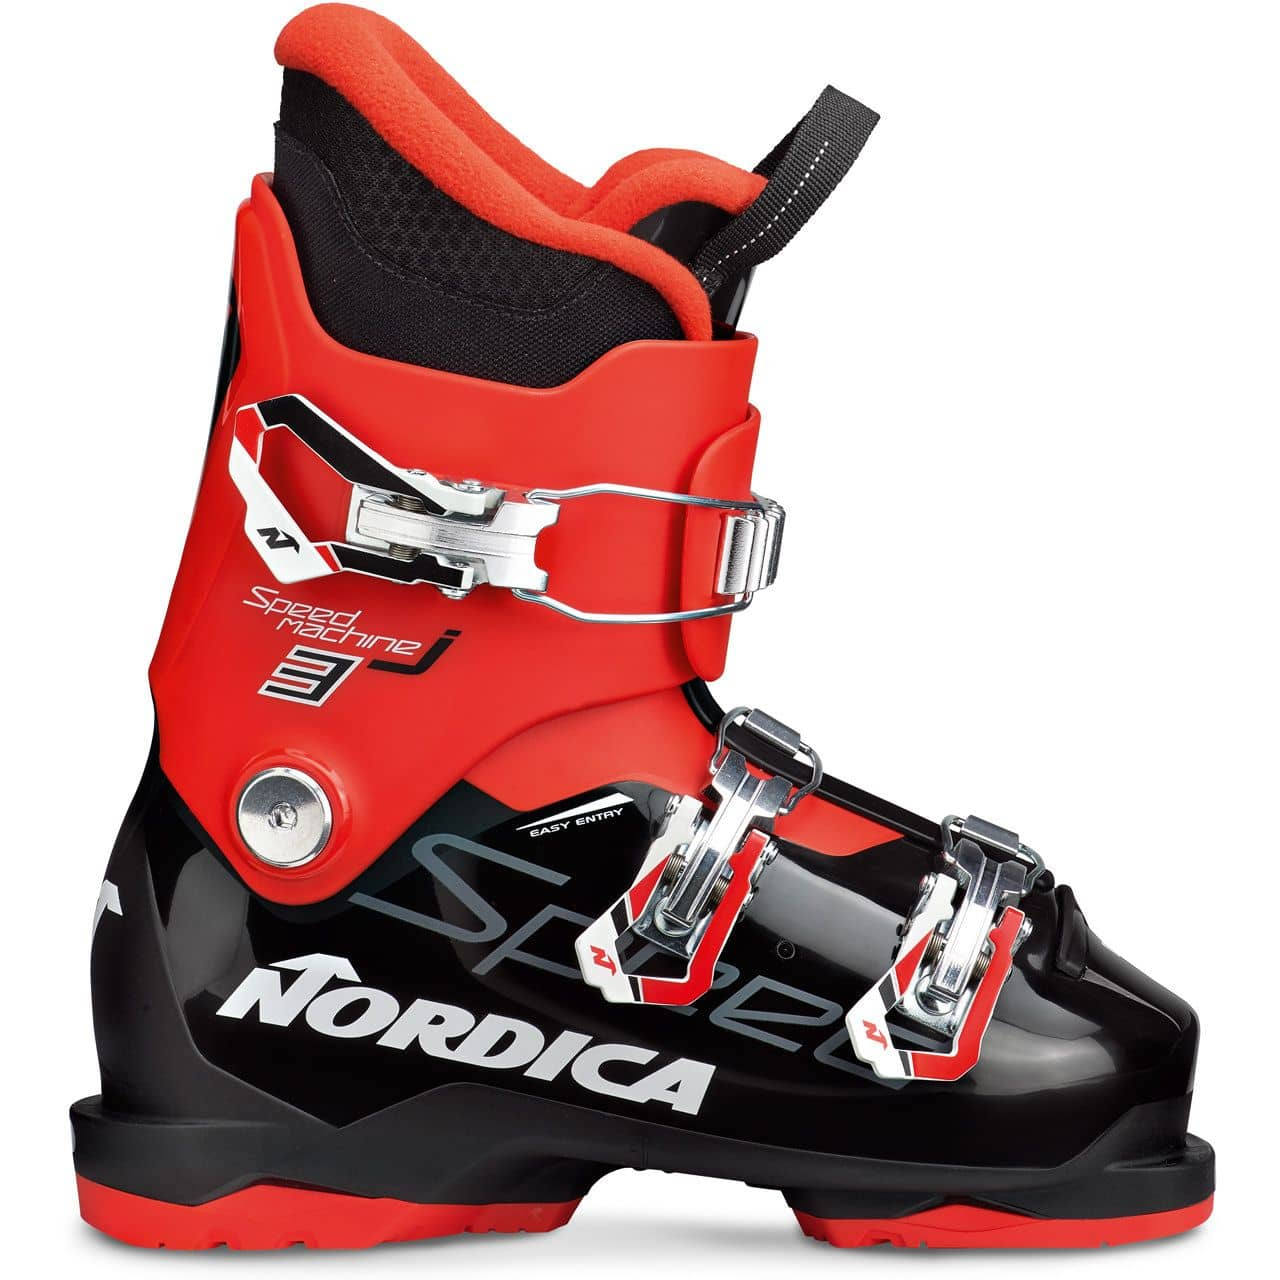 Nordica Speedmachine J 3 black/red (2019/20) von Nordica